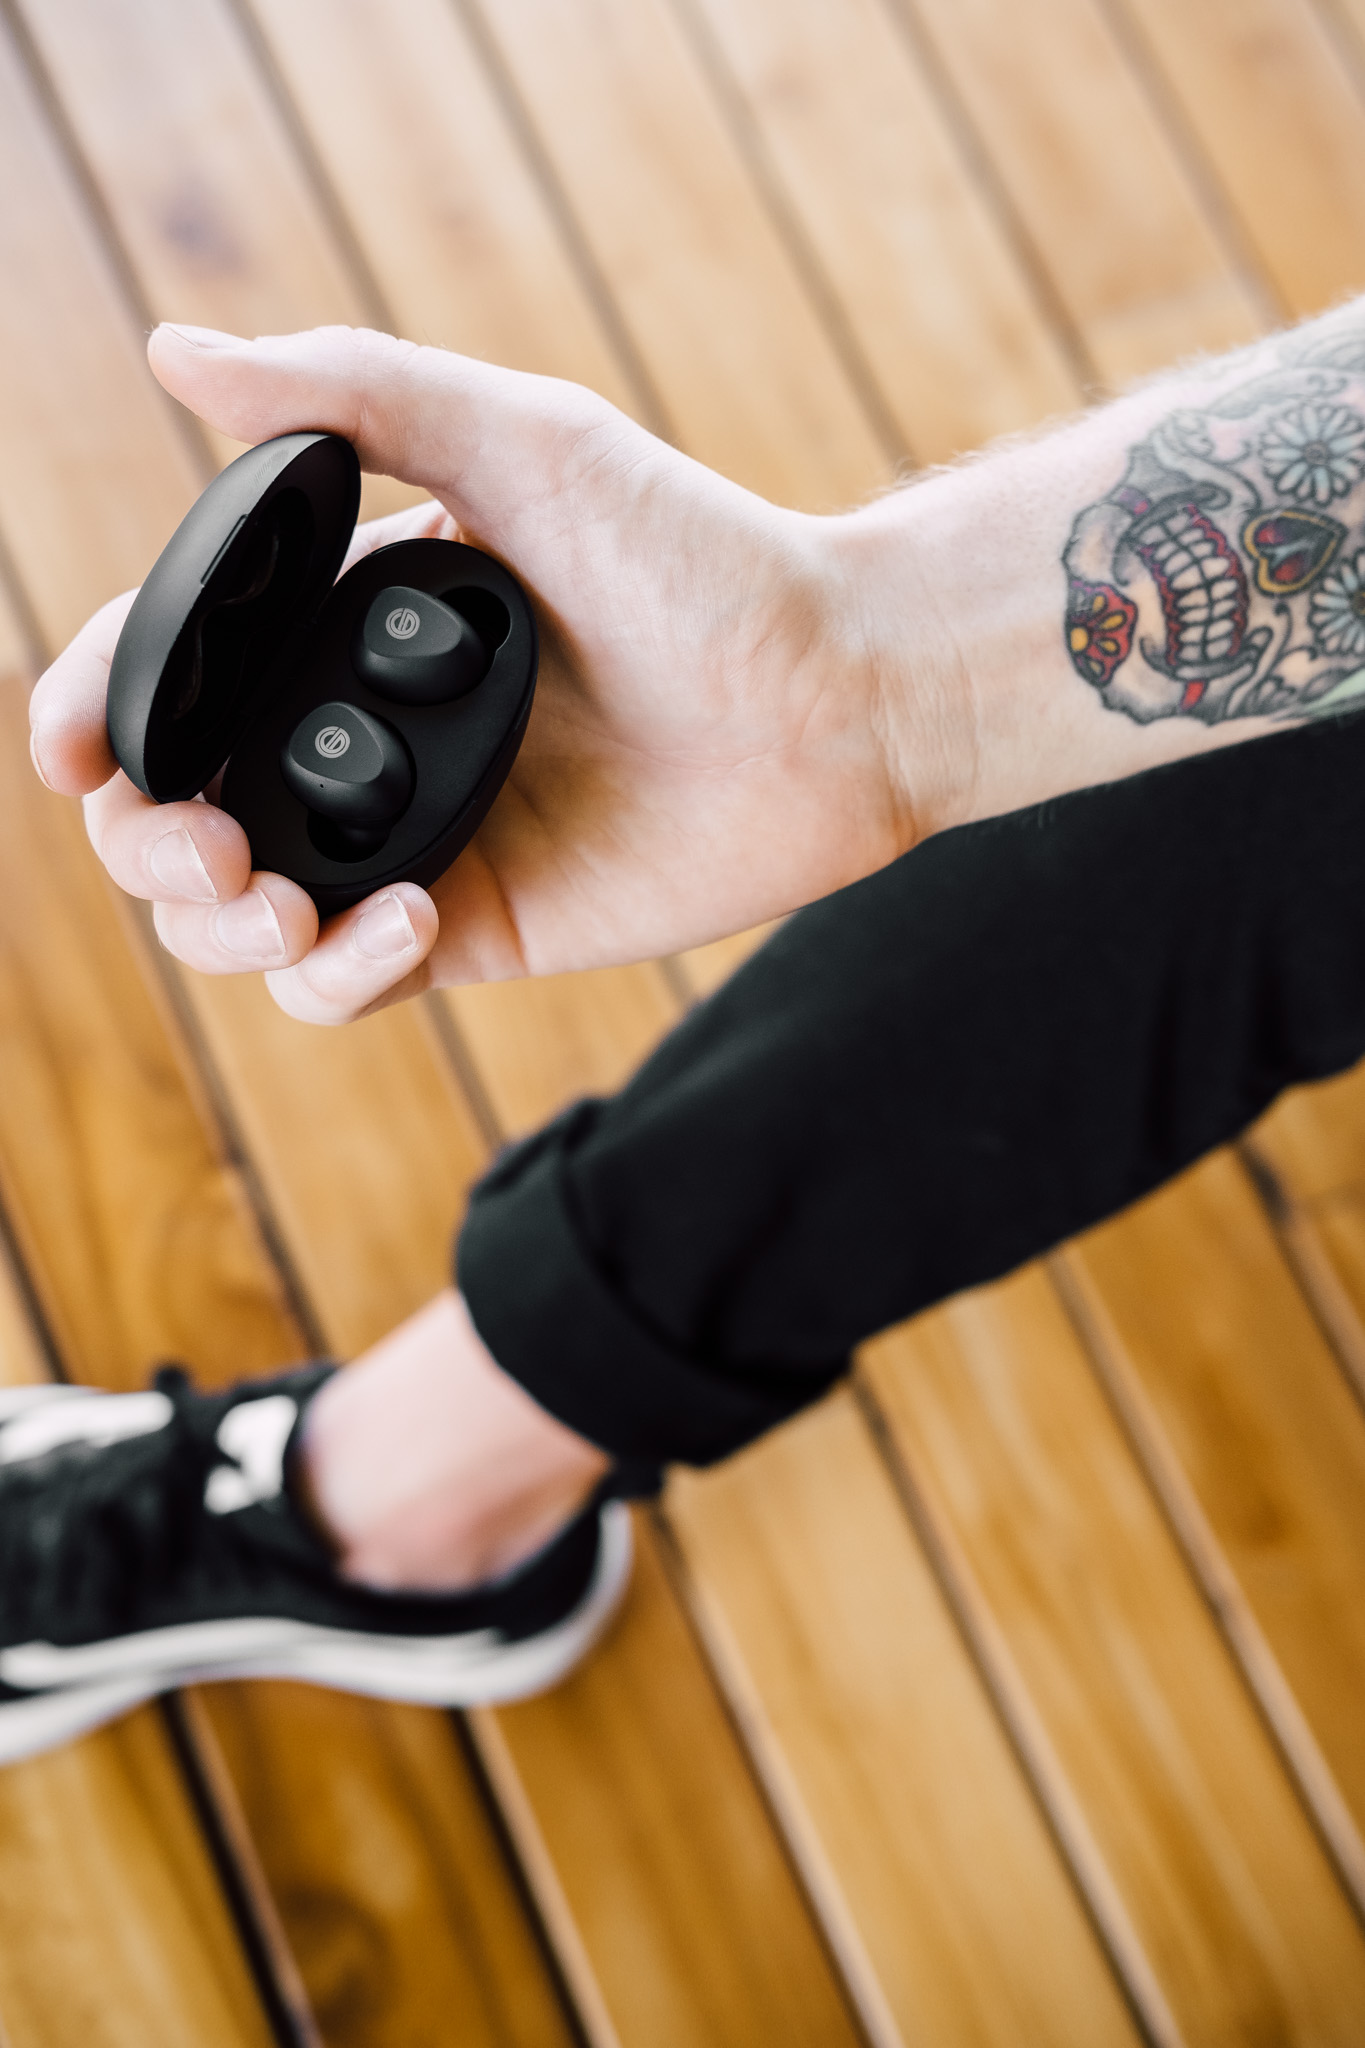 New York brand Grado has just released its first set of wireless earbuds, the GT220